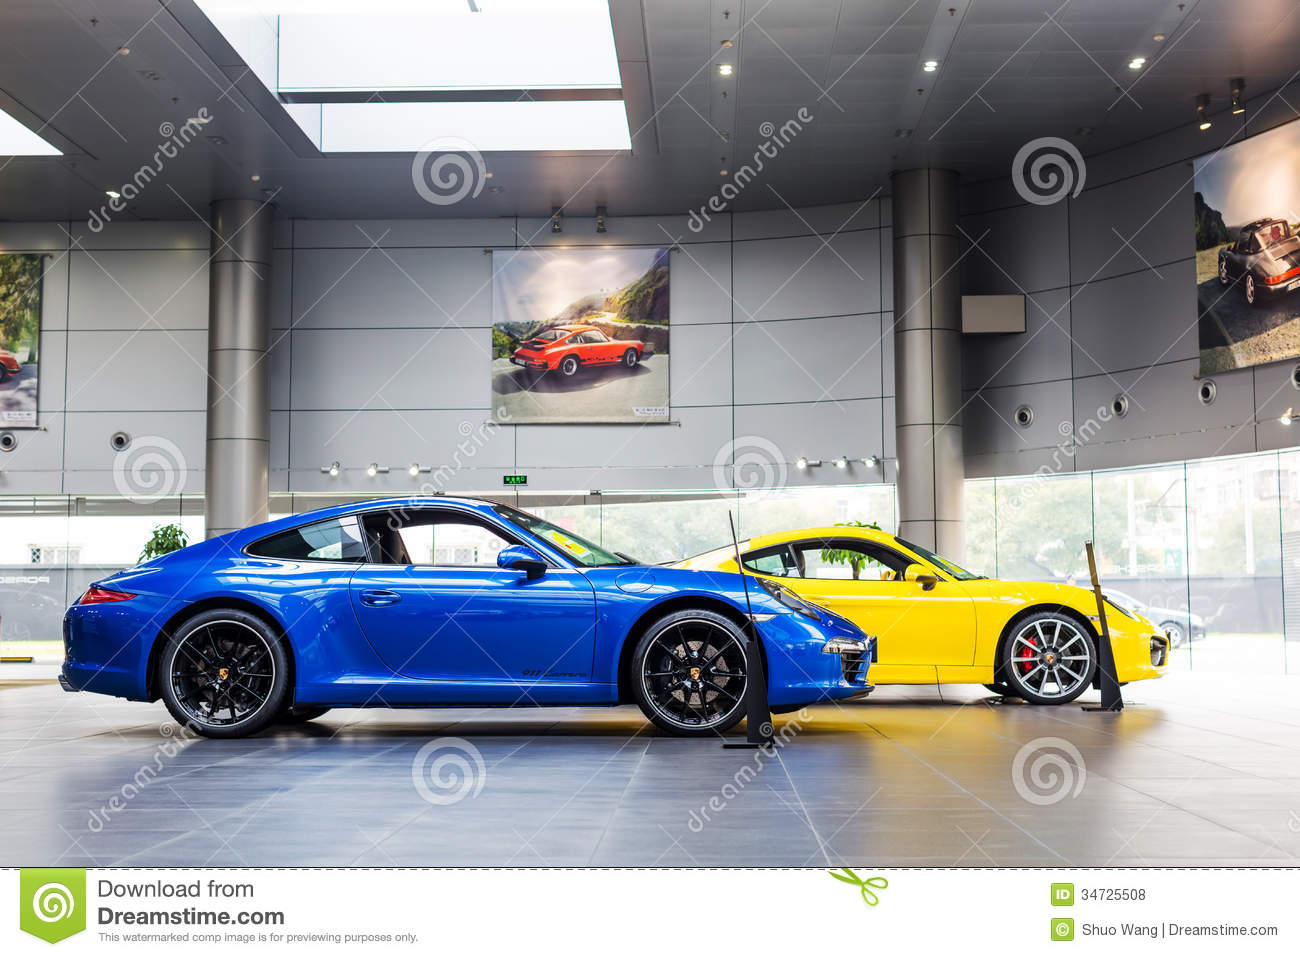 Car for sale editorial stock photo. Image of coupe, goods ...